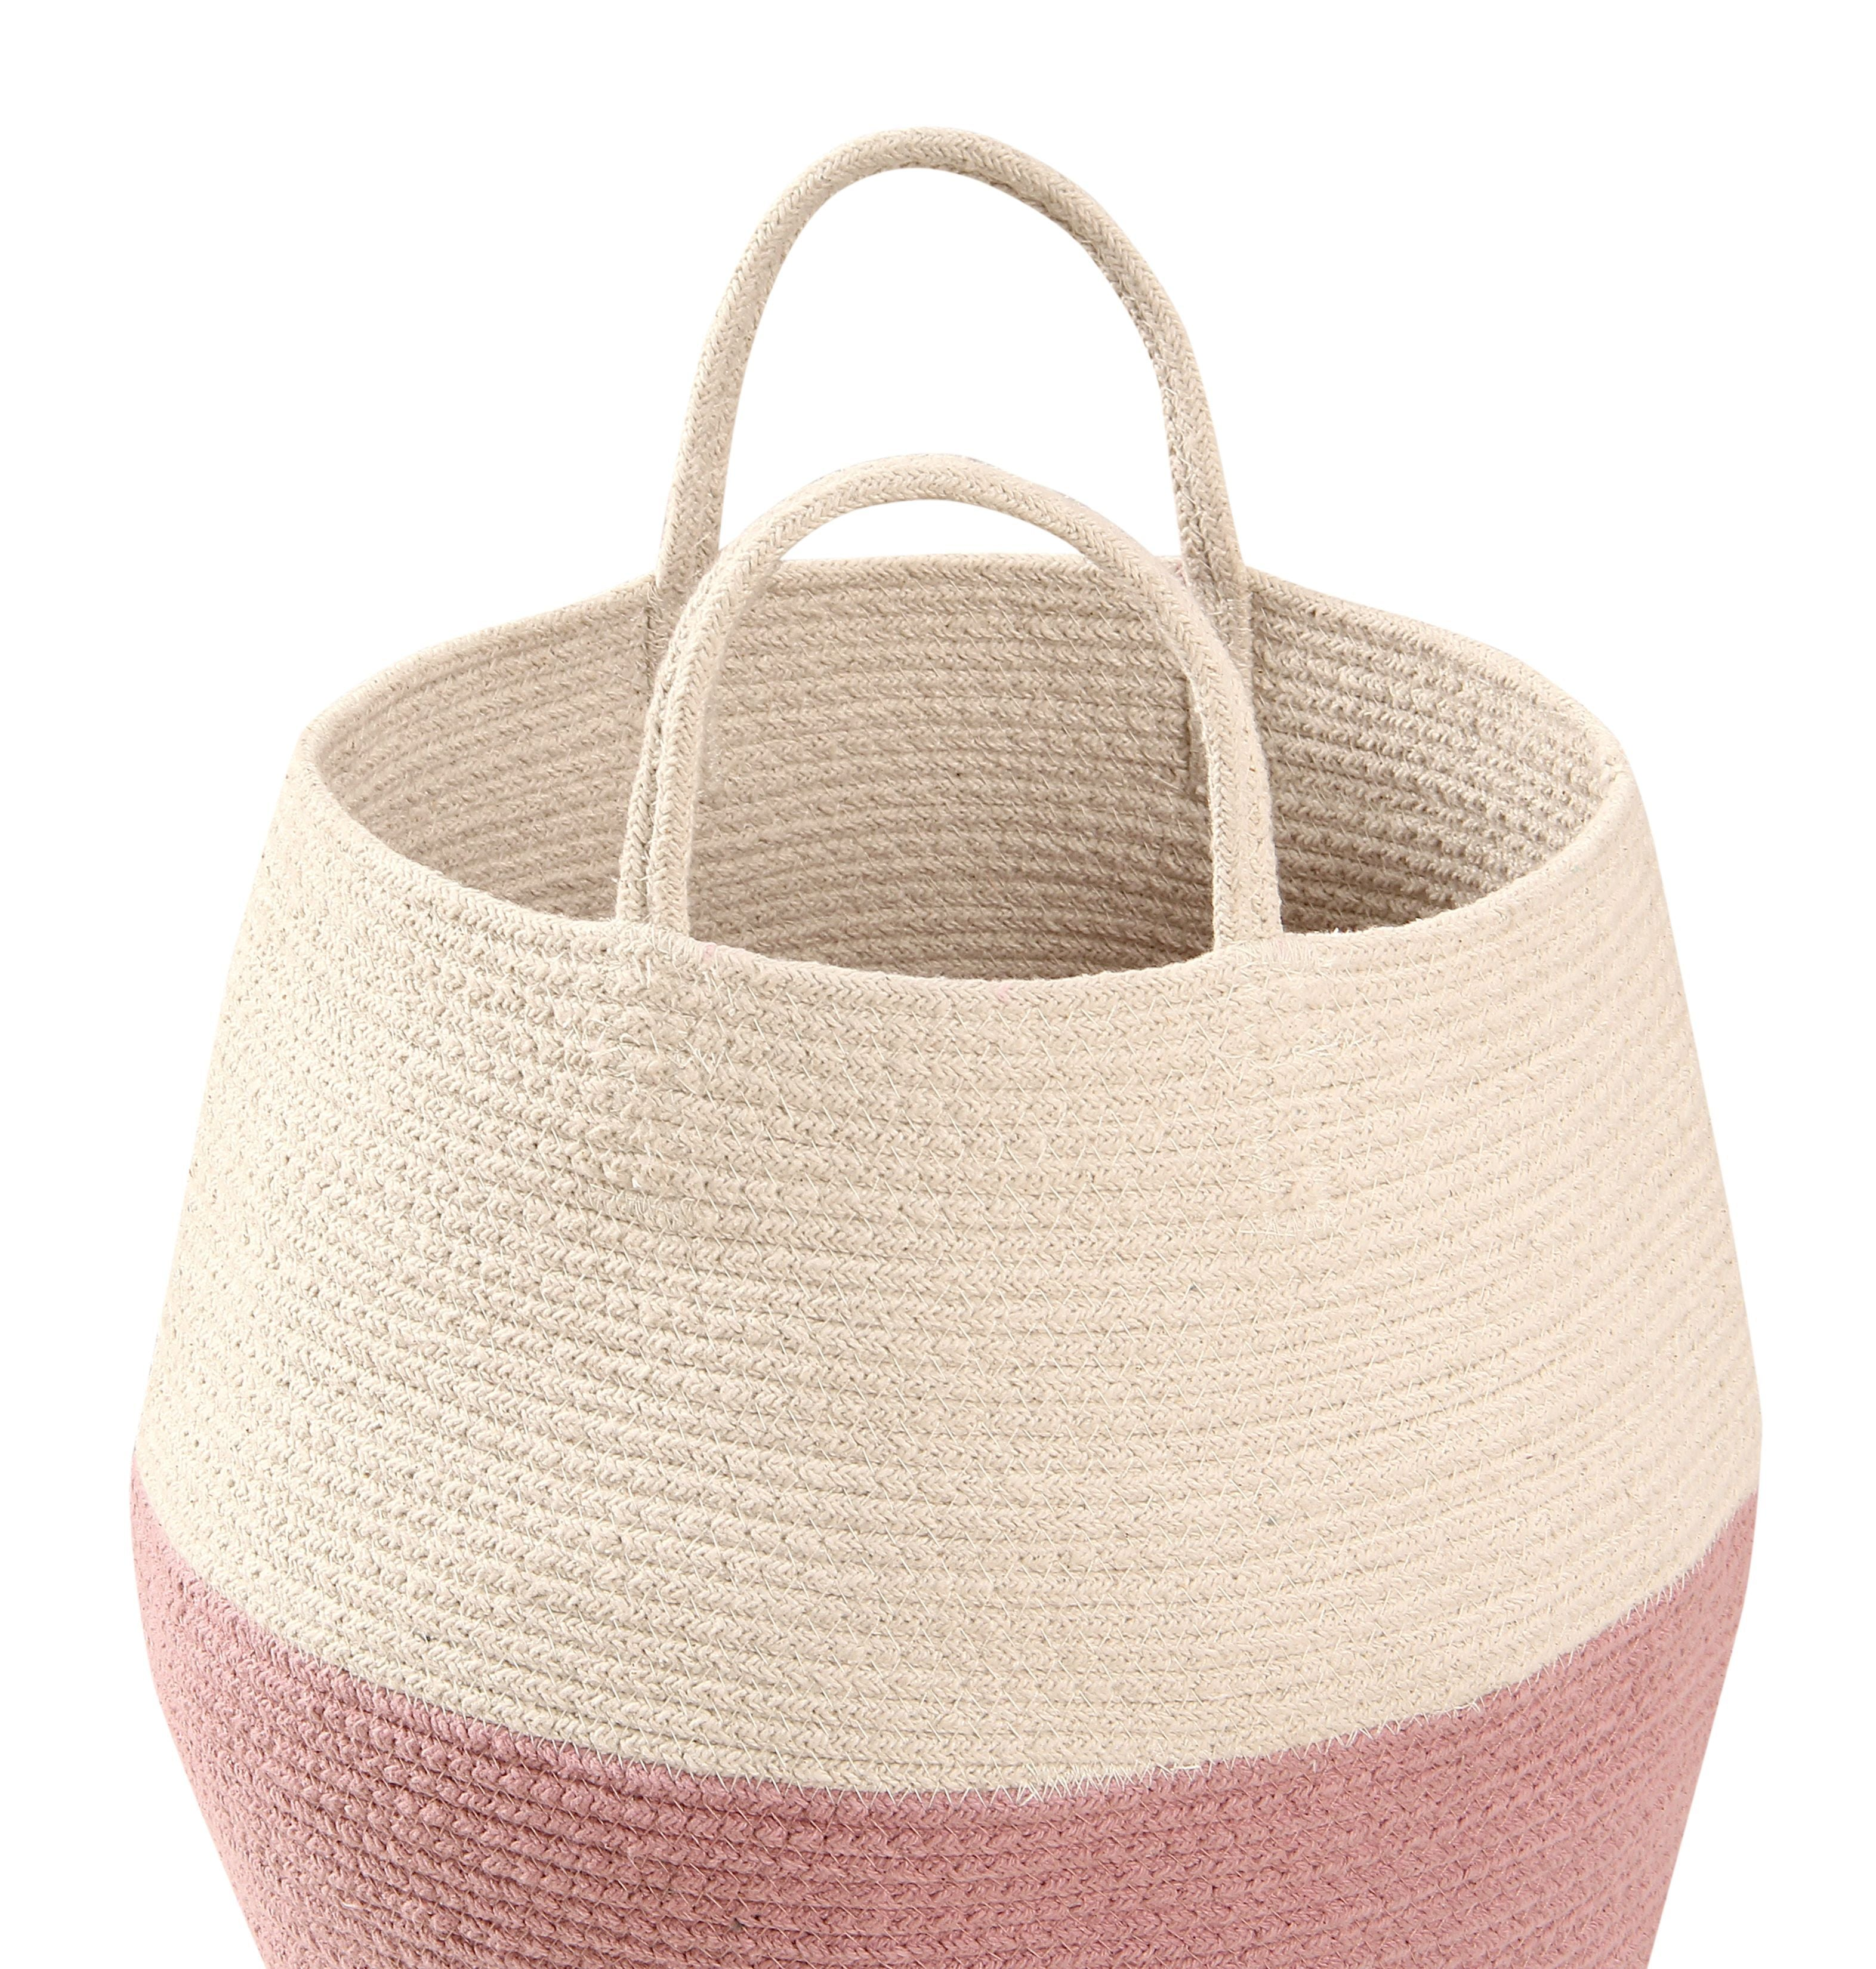 Zoco Basket in Ash Rose & Natural design by Lorena Canals